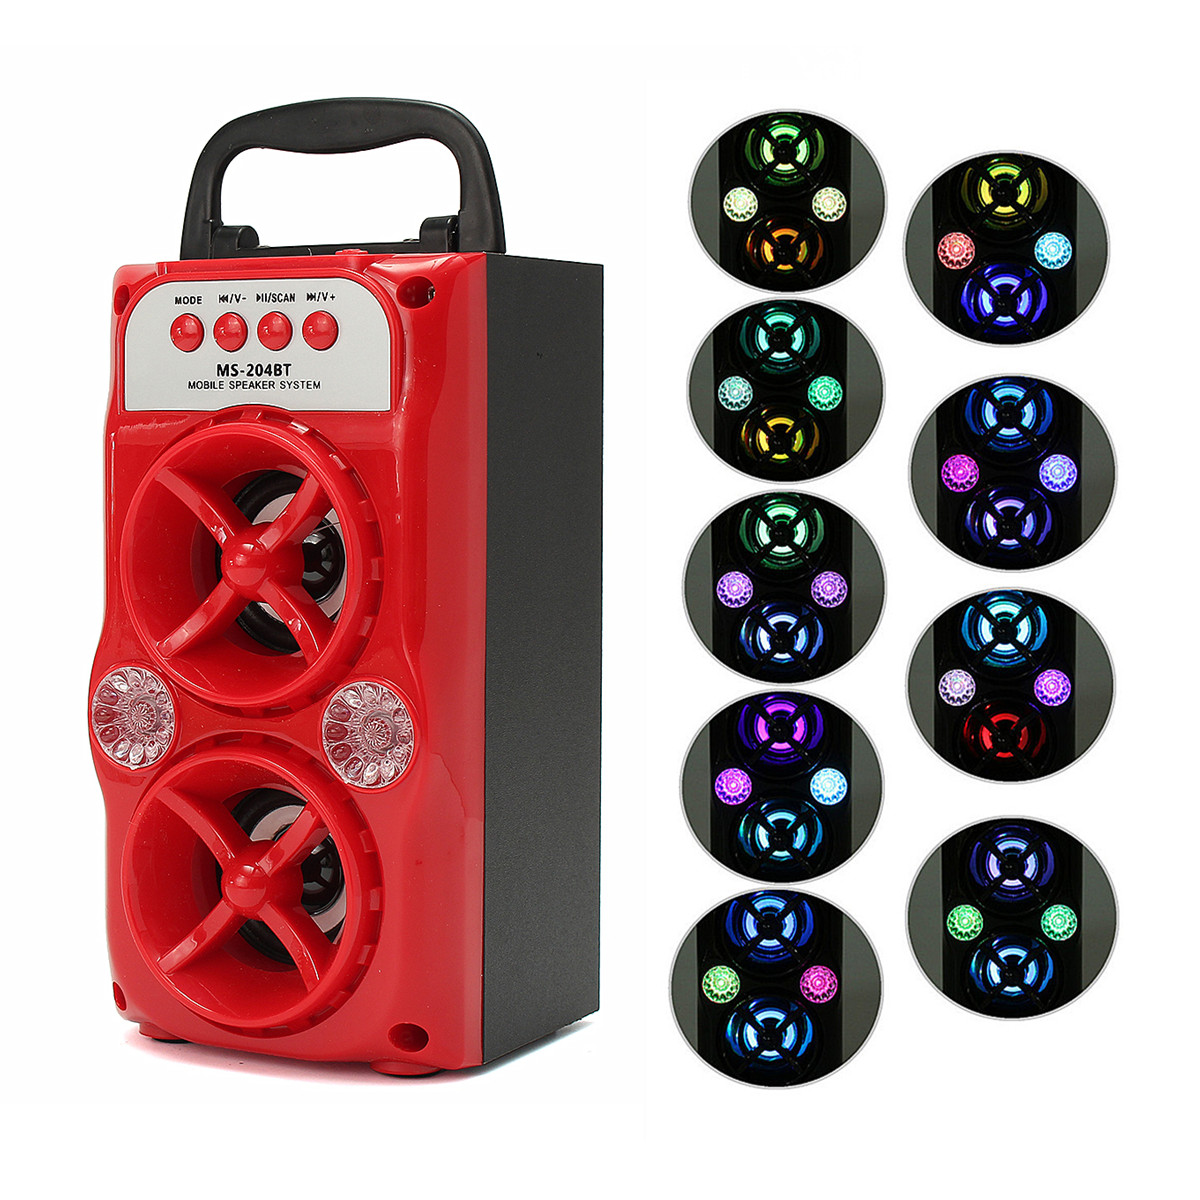 Portable Wireless bluetooth Stereo Party Speaker Rechargeable With stereo speaker USB/TF/AUX/FM Radio LED Indoor Outdoor Home Music Player Super Bass Red